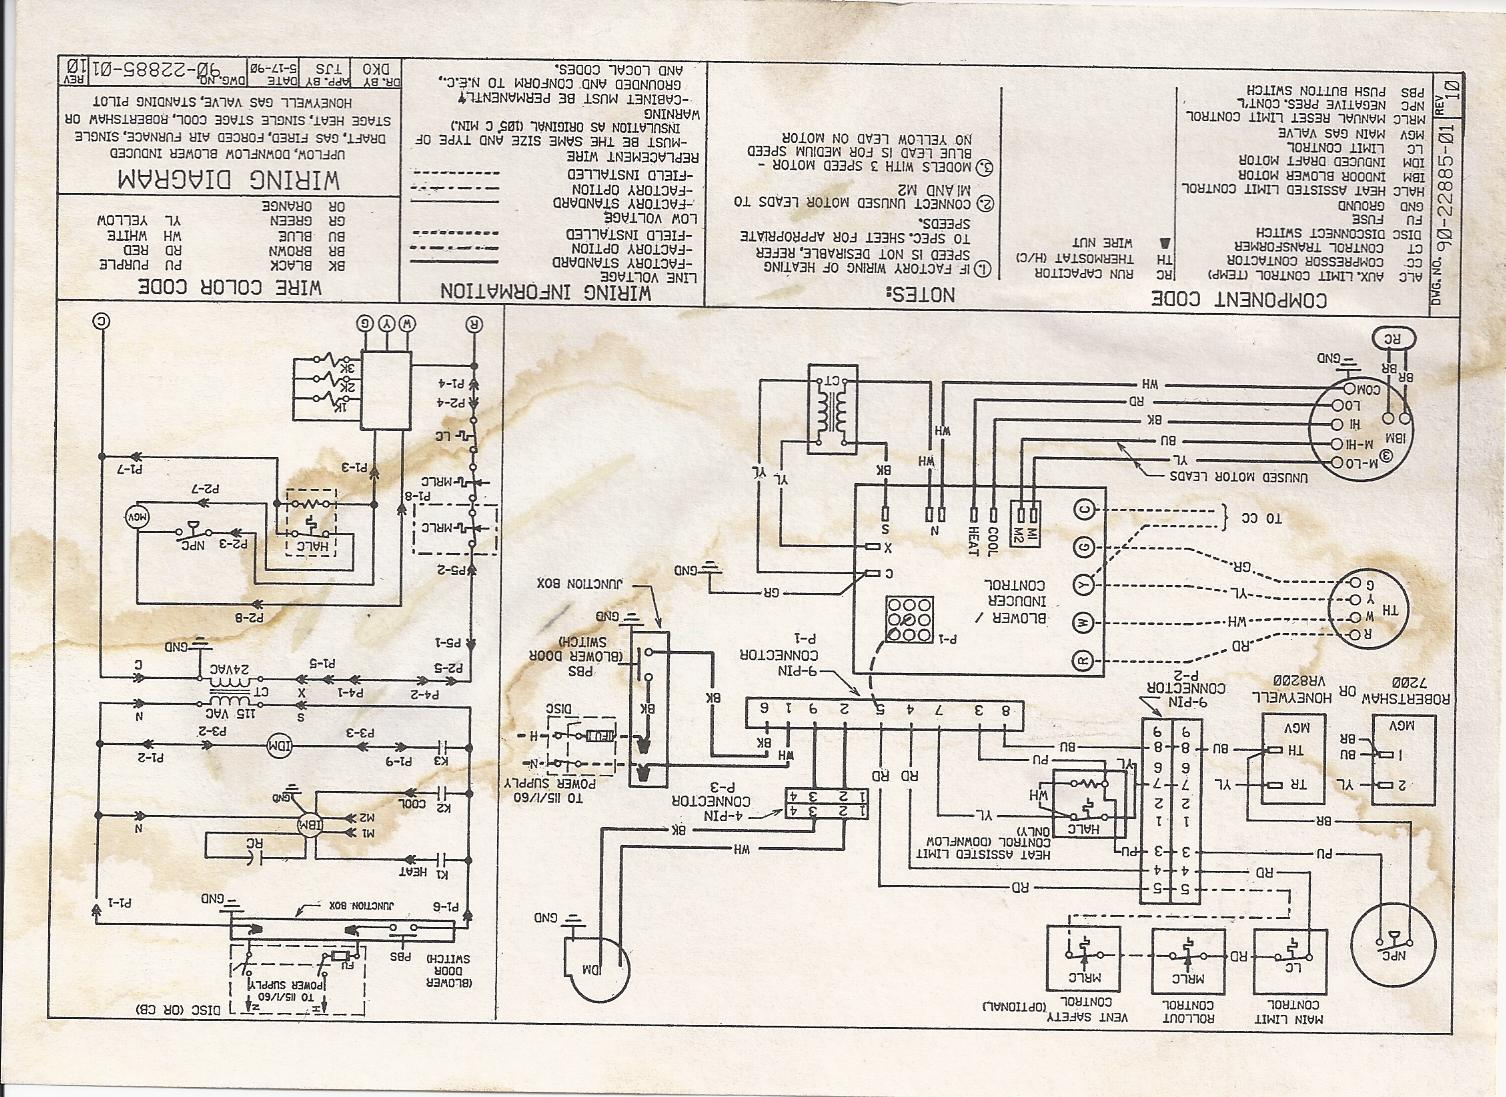 gas wall heater wiring diagram my ruud indoor blower runs all the time, i have been told ... 220 wall heater wiring diagram